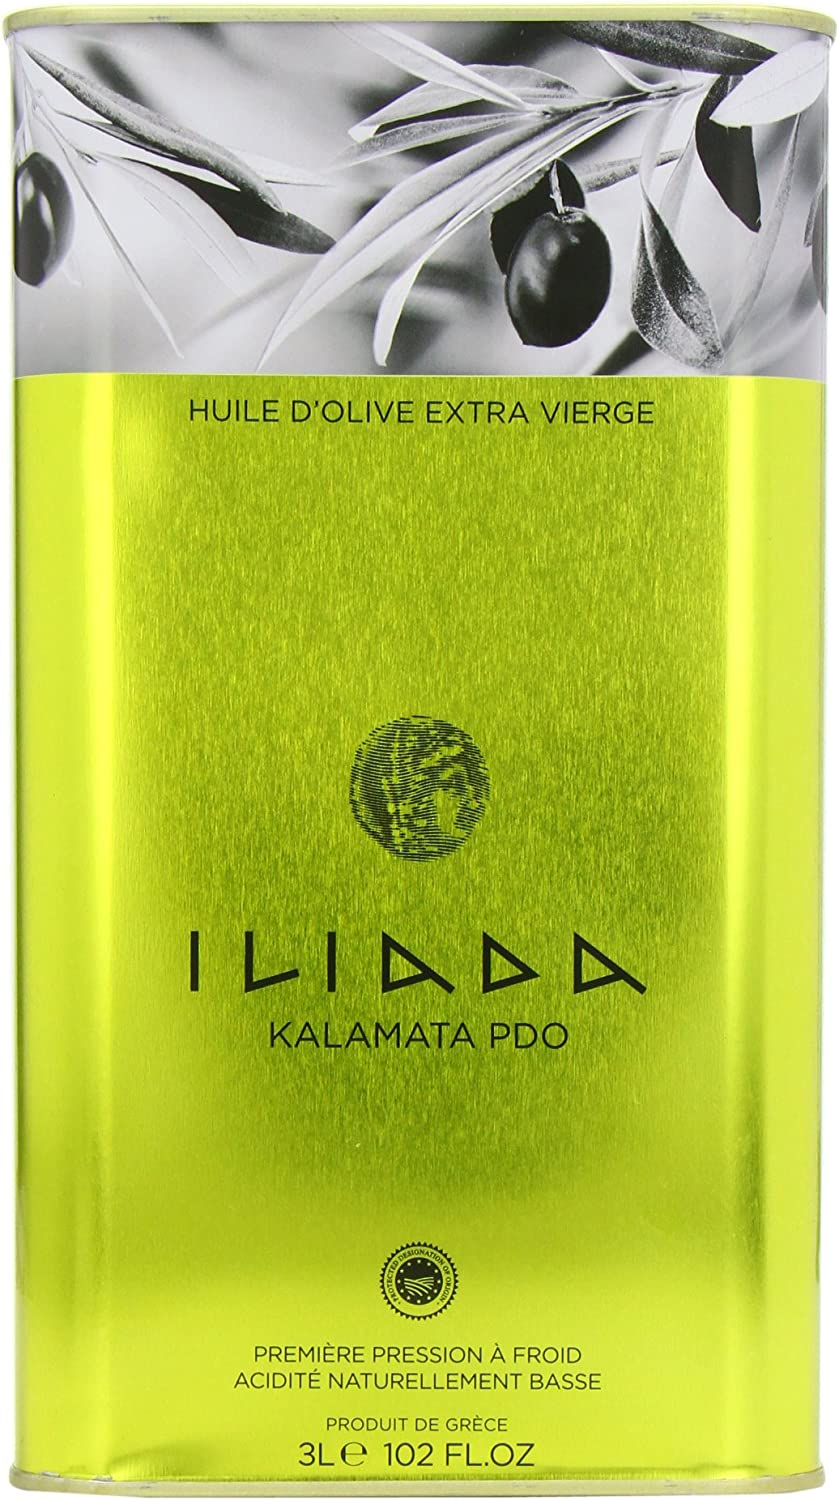 Iliada Extra virgin olive oil 3L Tin From Greece